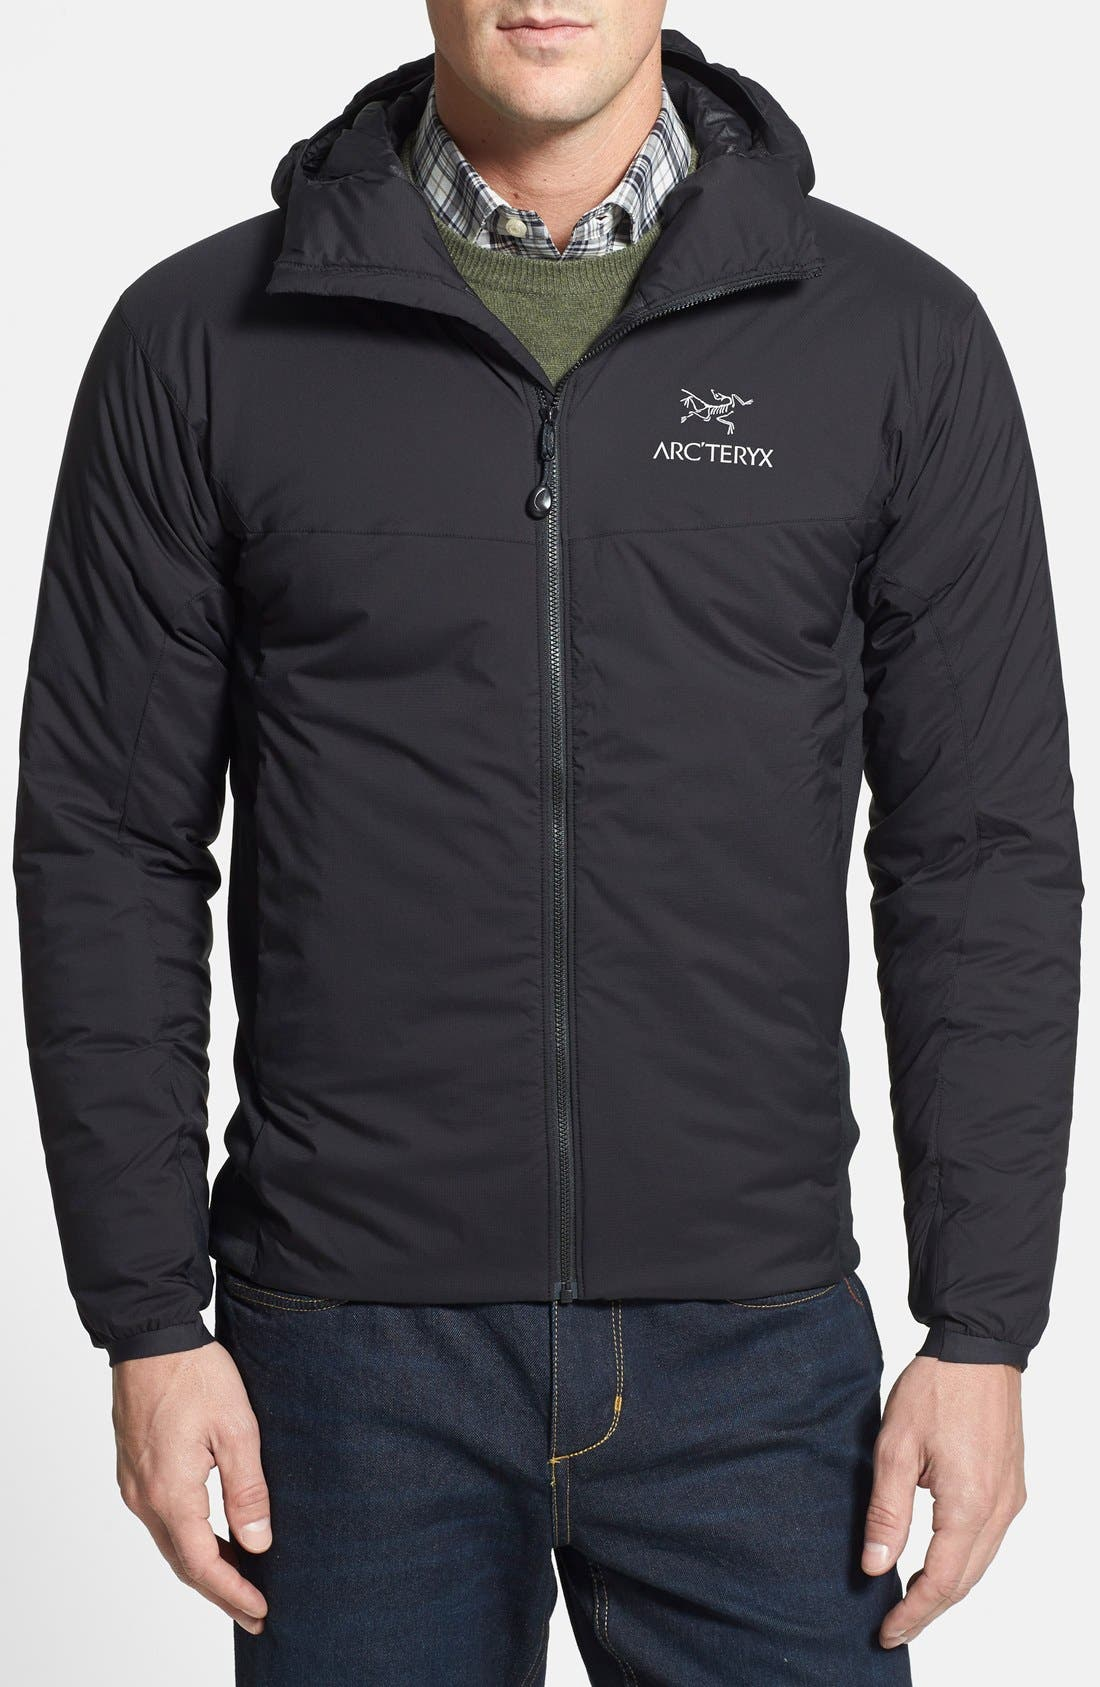 Arc'teryx 'Atom LT' Trim Fit Wind & Water Resistant Coreloft™ Hooded Jacket